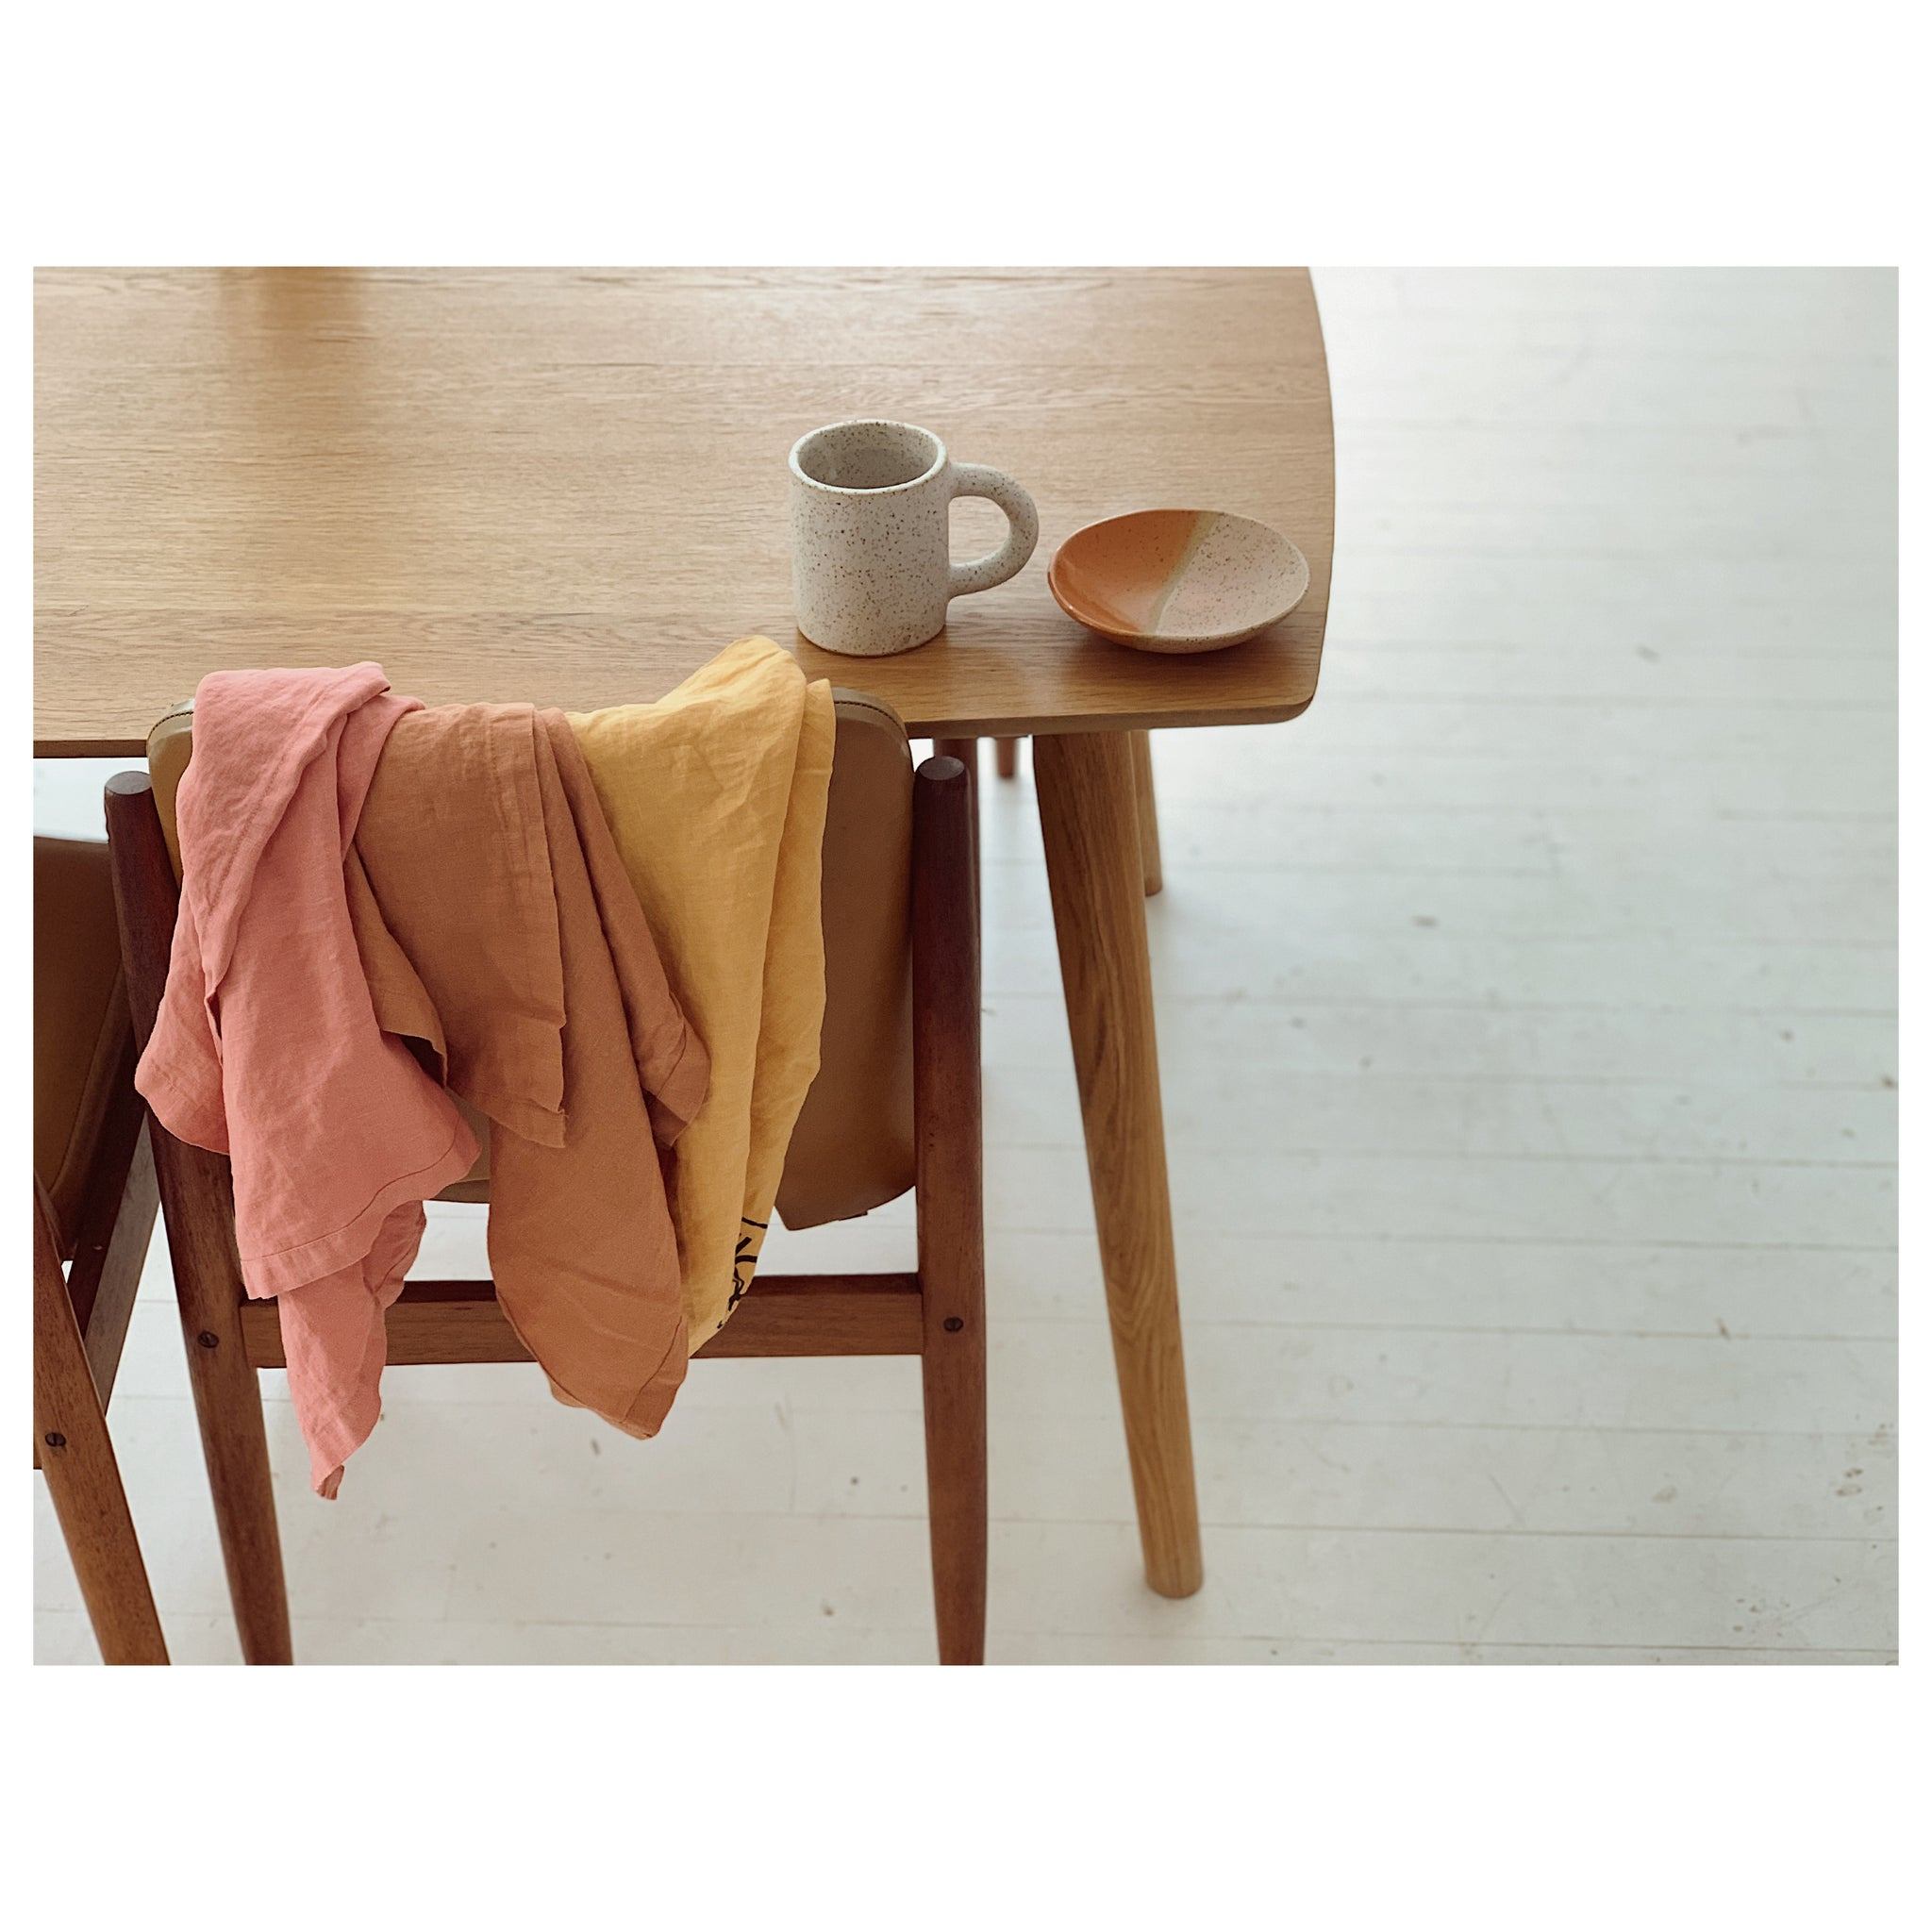 tonal tea towel set (3)